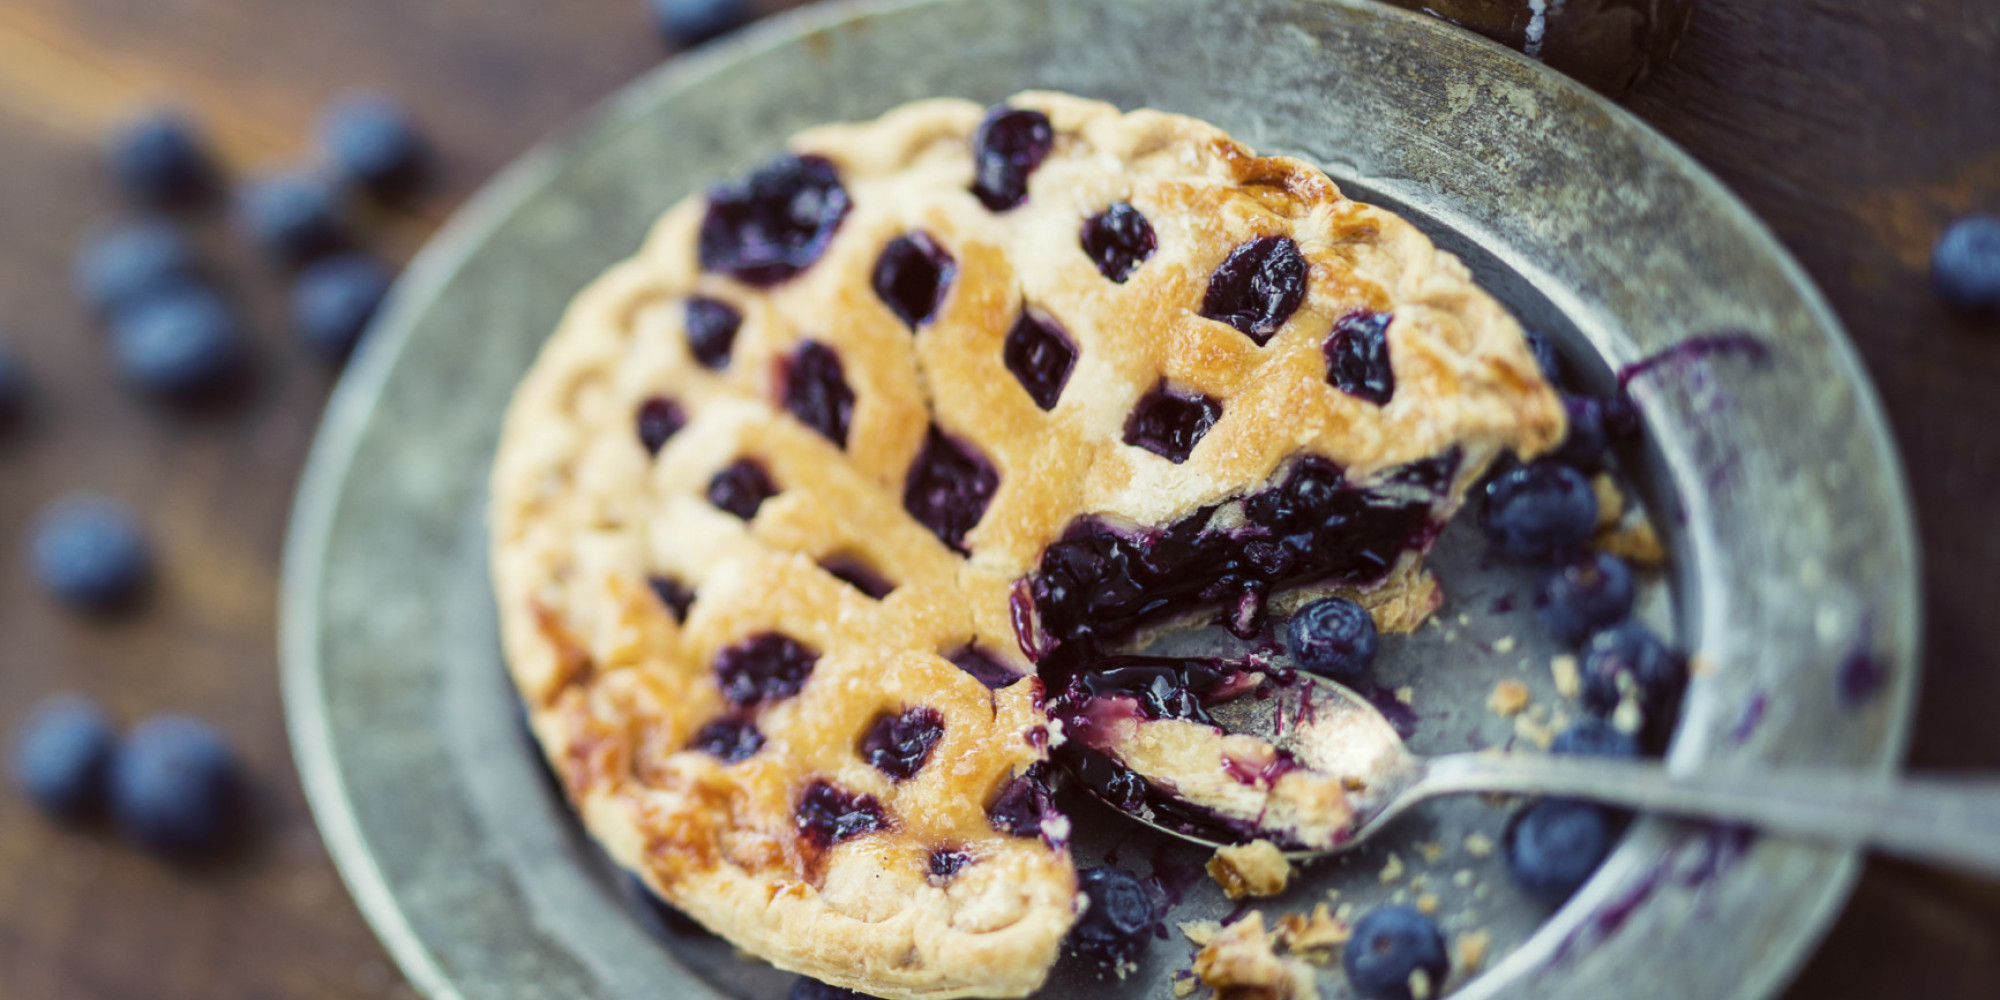 How Blueberry Pie Caused A Girl